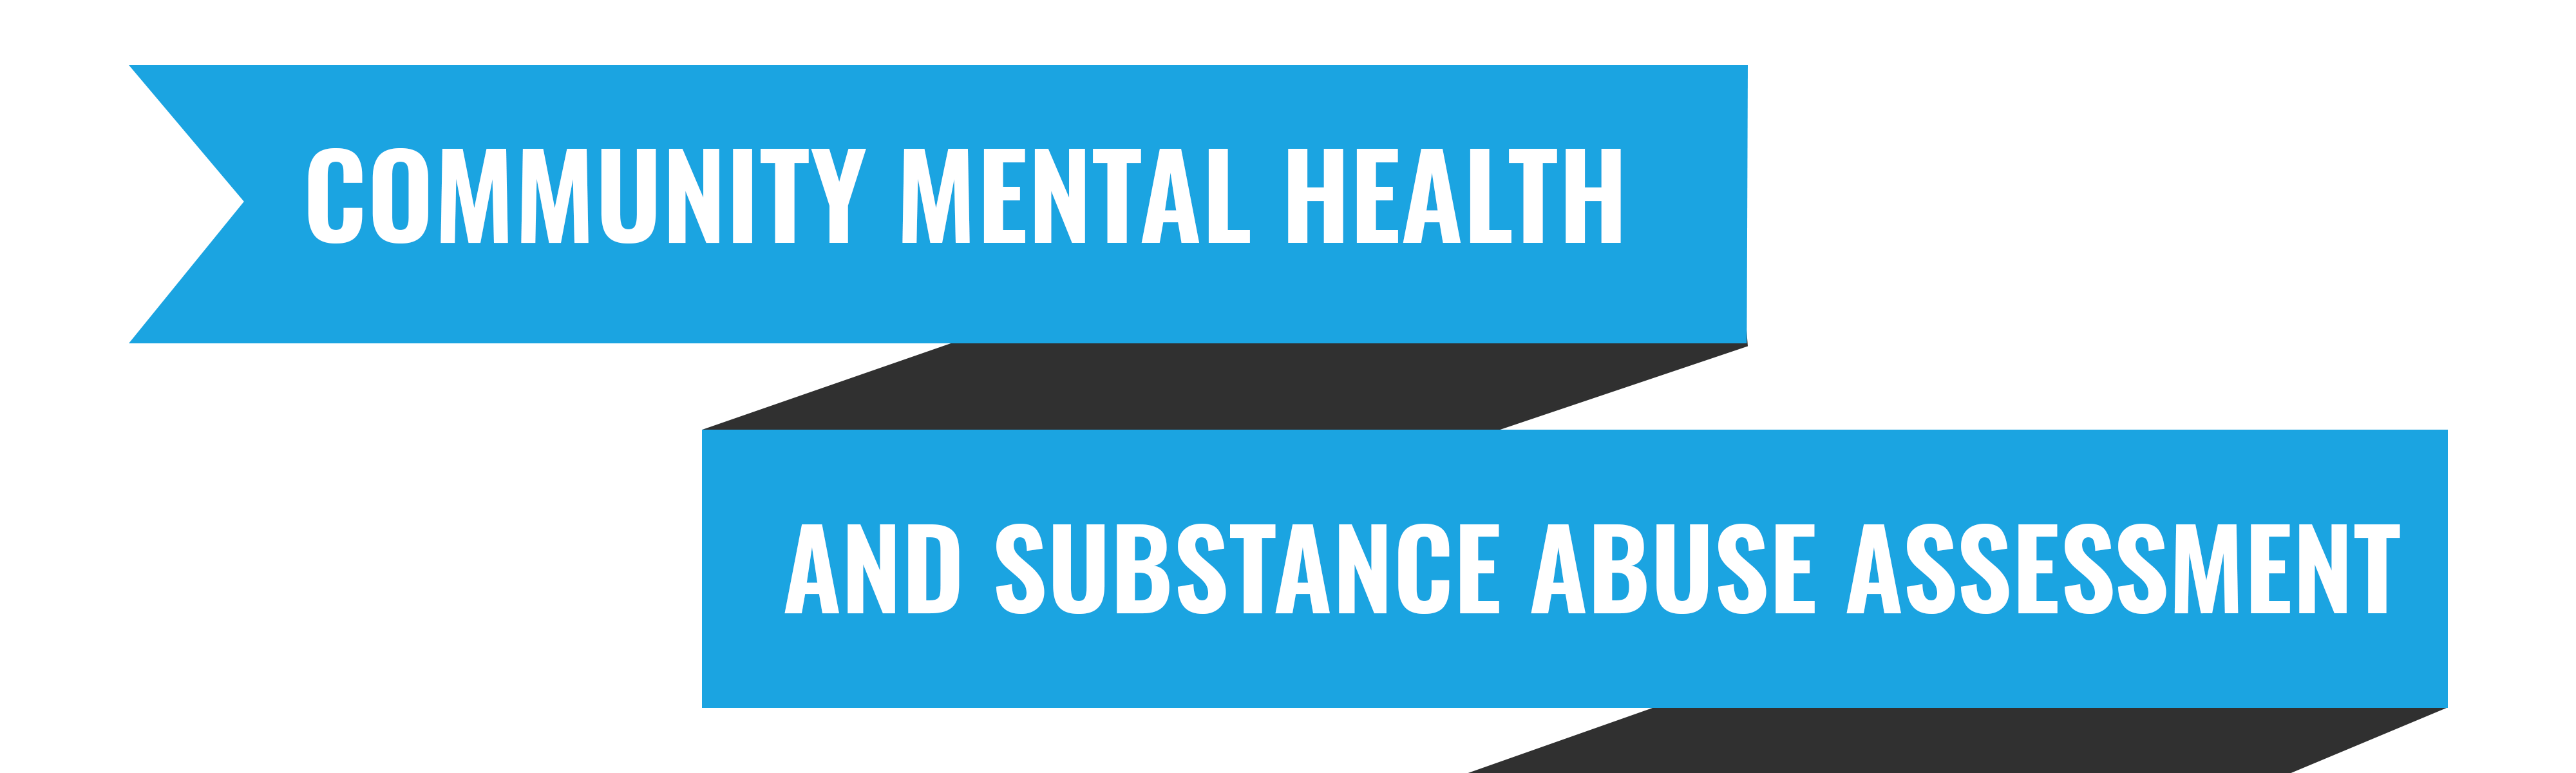 Community Mental Health and Substance Abuse Assessment